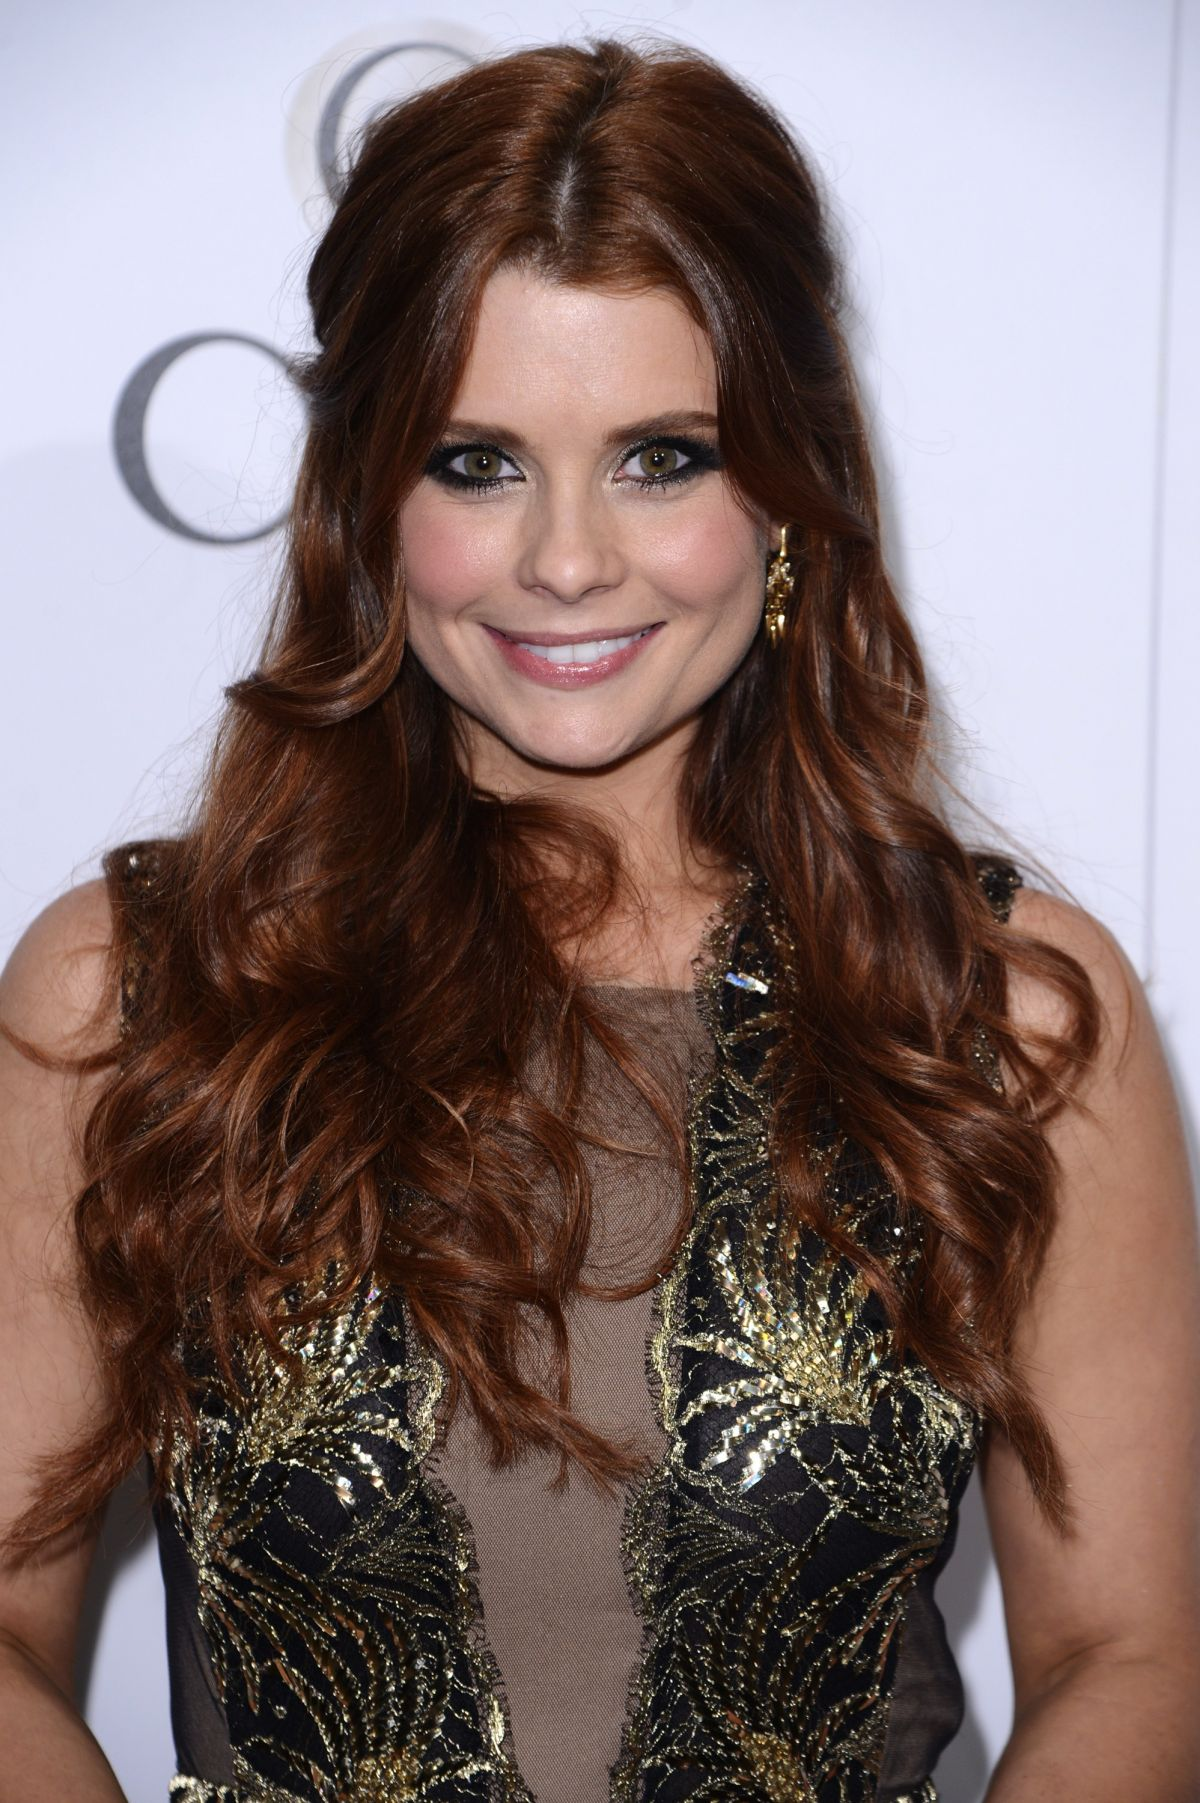 JOANNA GARCIA at Elle's Women in television Celebration in Hollywood